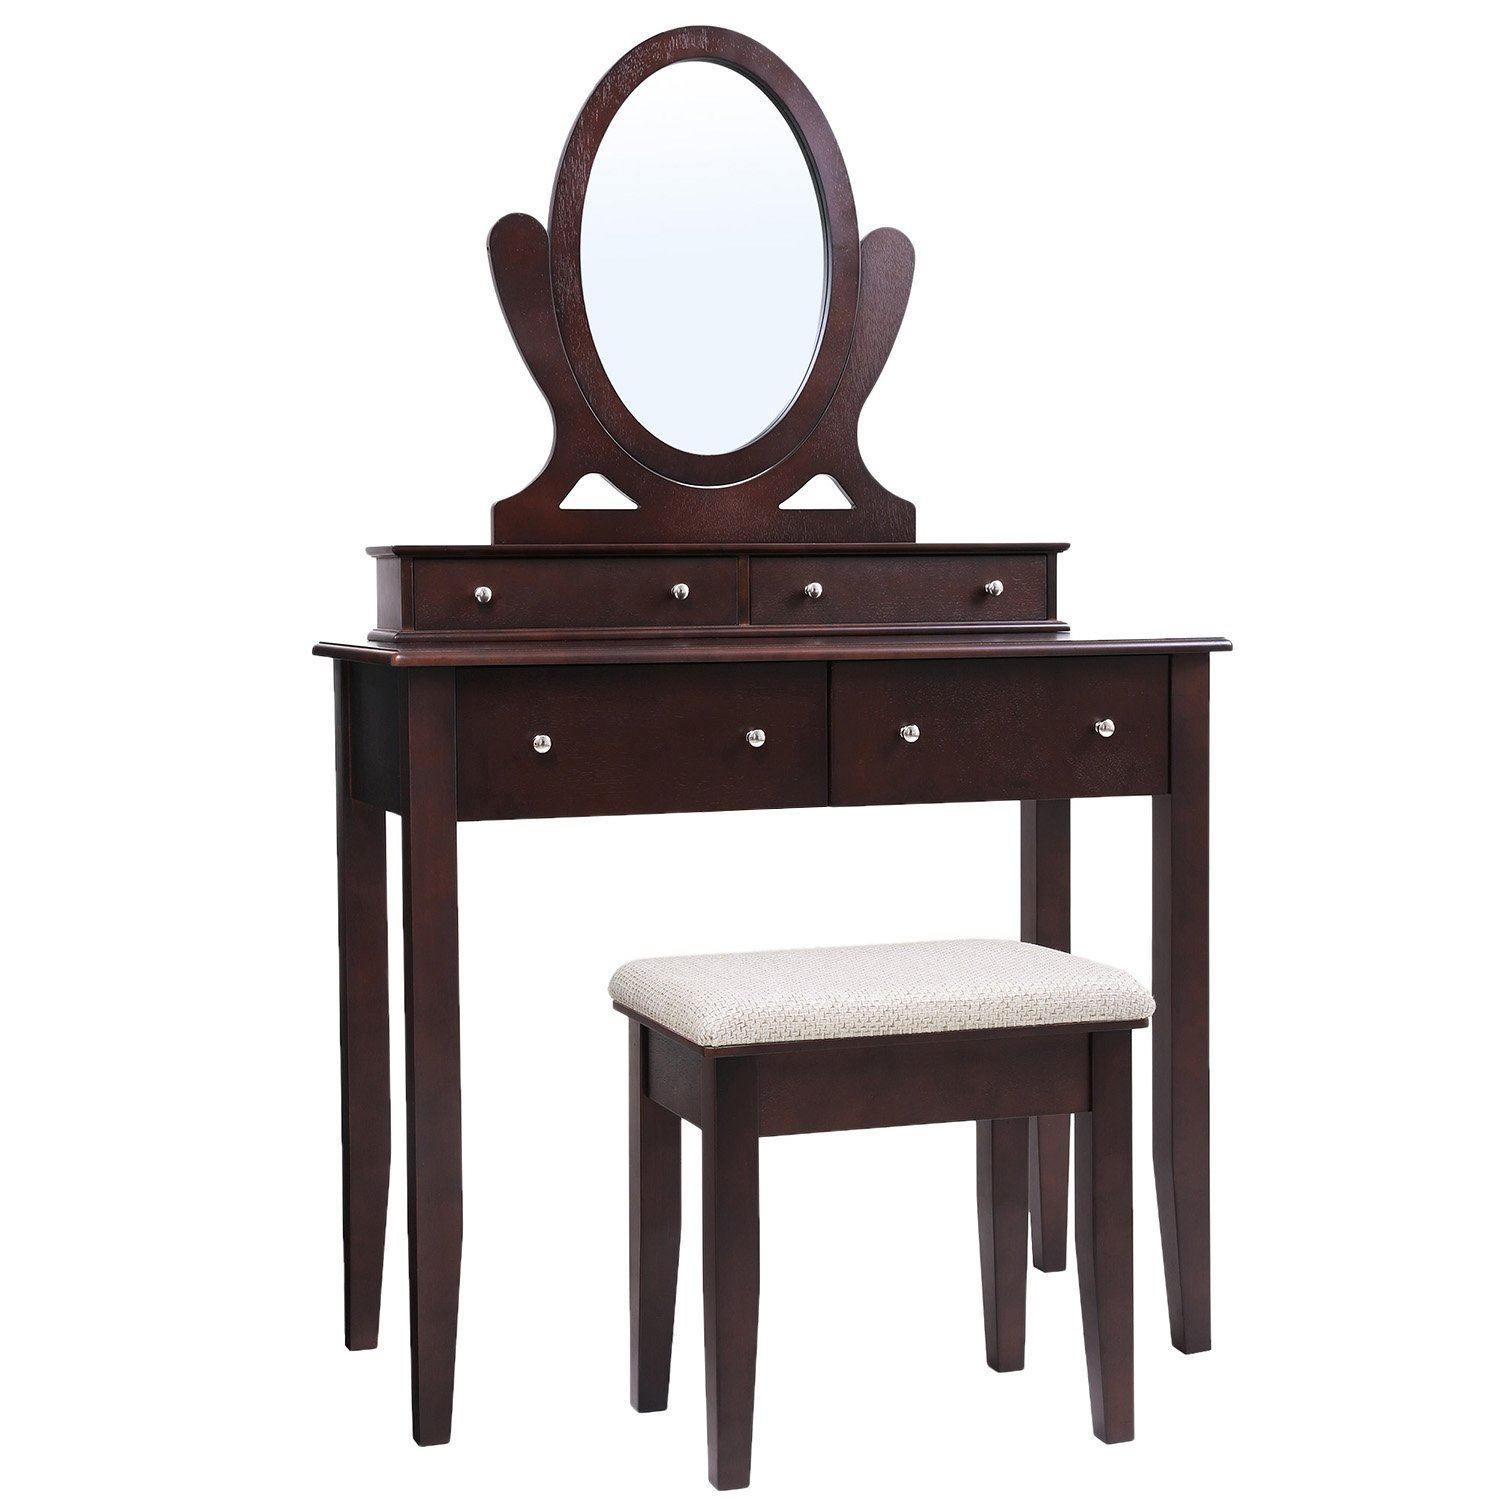 SONGMICS Vanity Table Set with Mirror, 4 Drawers and Large Stool, Makeup Dressing Table with Wood Grain Surface, Gift for Women Girls Dark Expresso URDT22BR